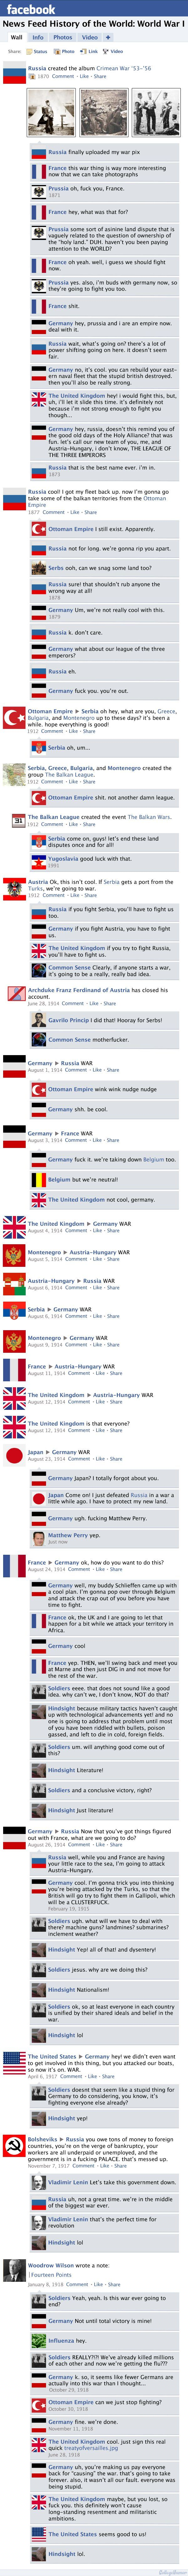 Facebook News Feed History of the World: World War I to World War II - CollegeHumor Article